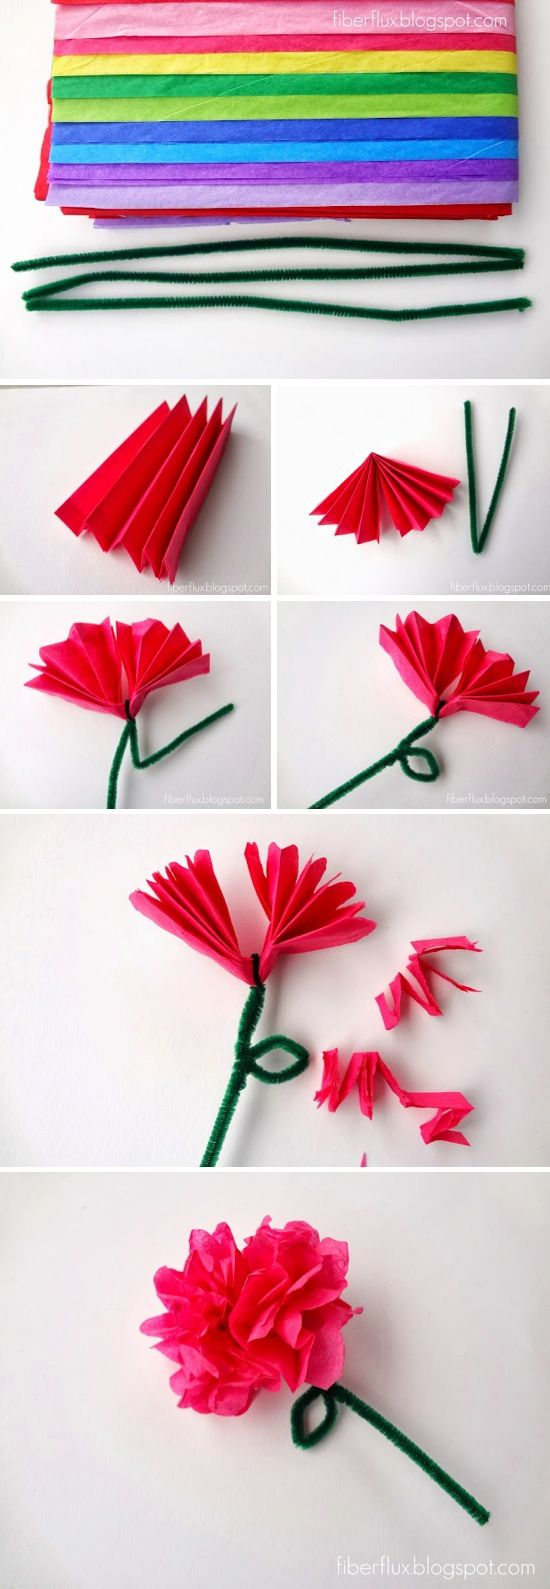 25 best ideas about paper flowers craft on pinterest Home decor crafts with paper